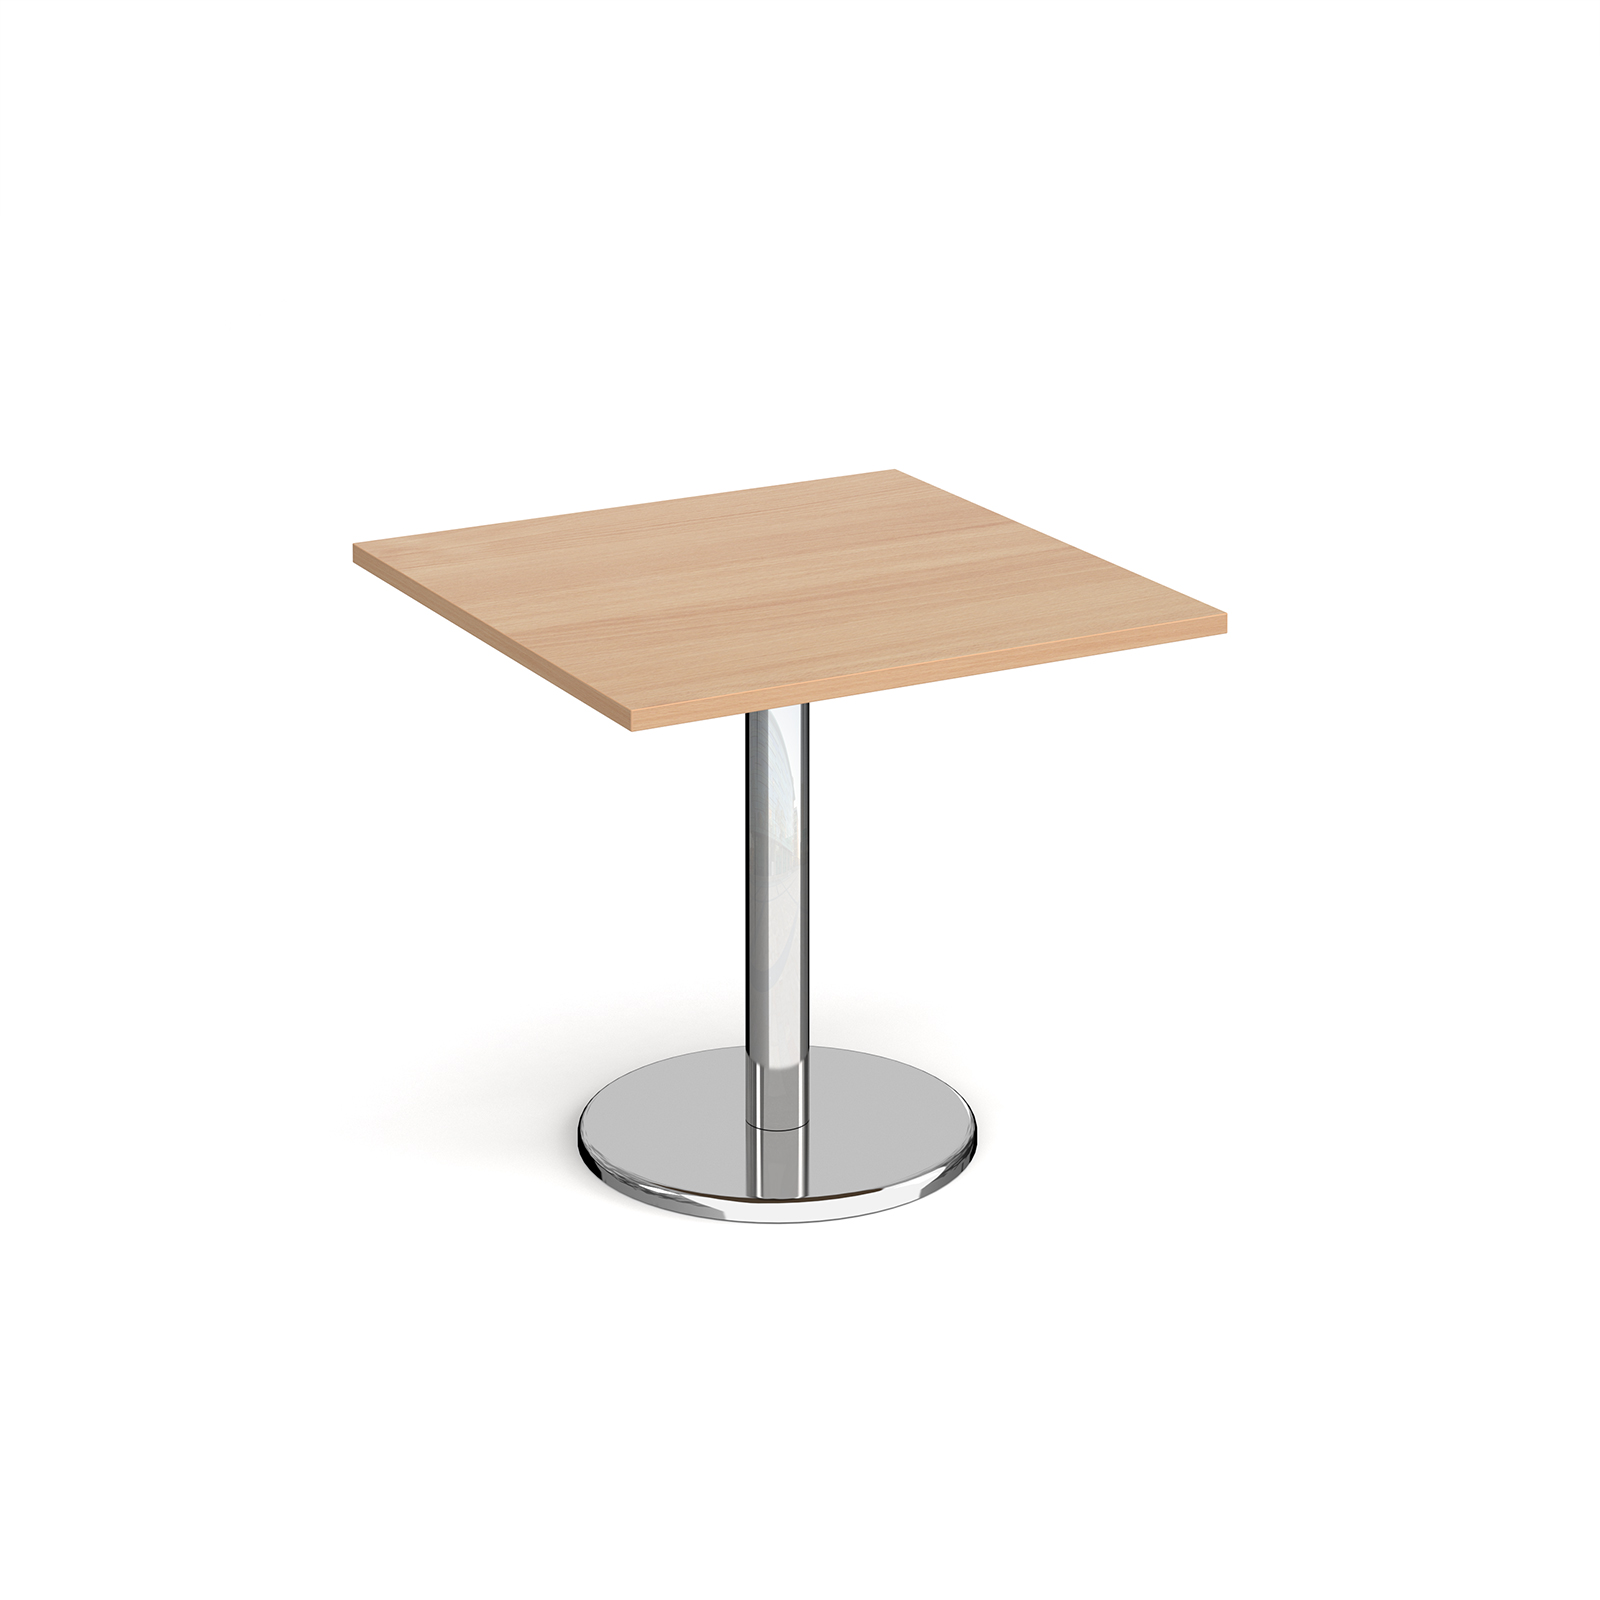 Pisa square dining table with round base